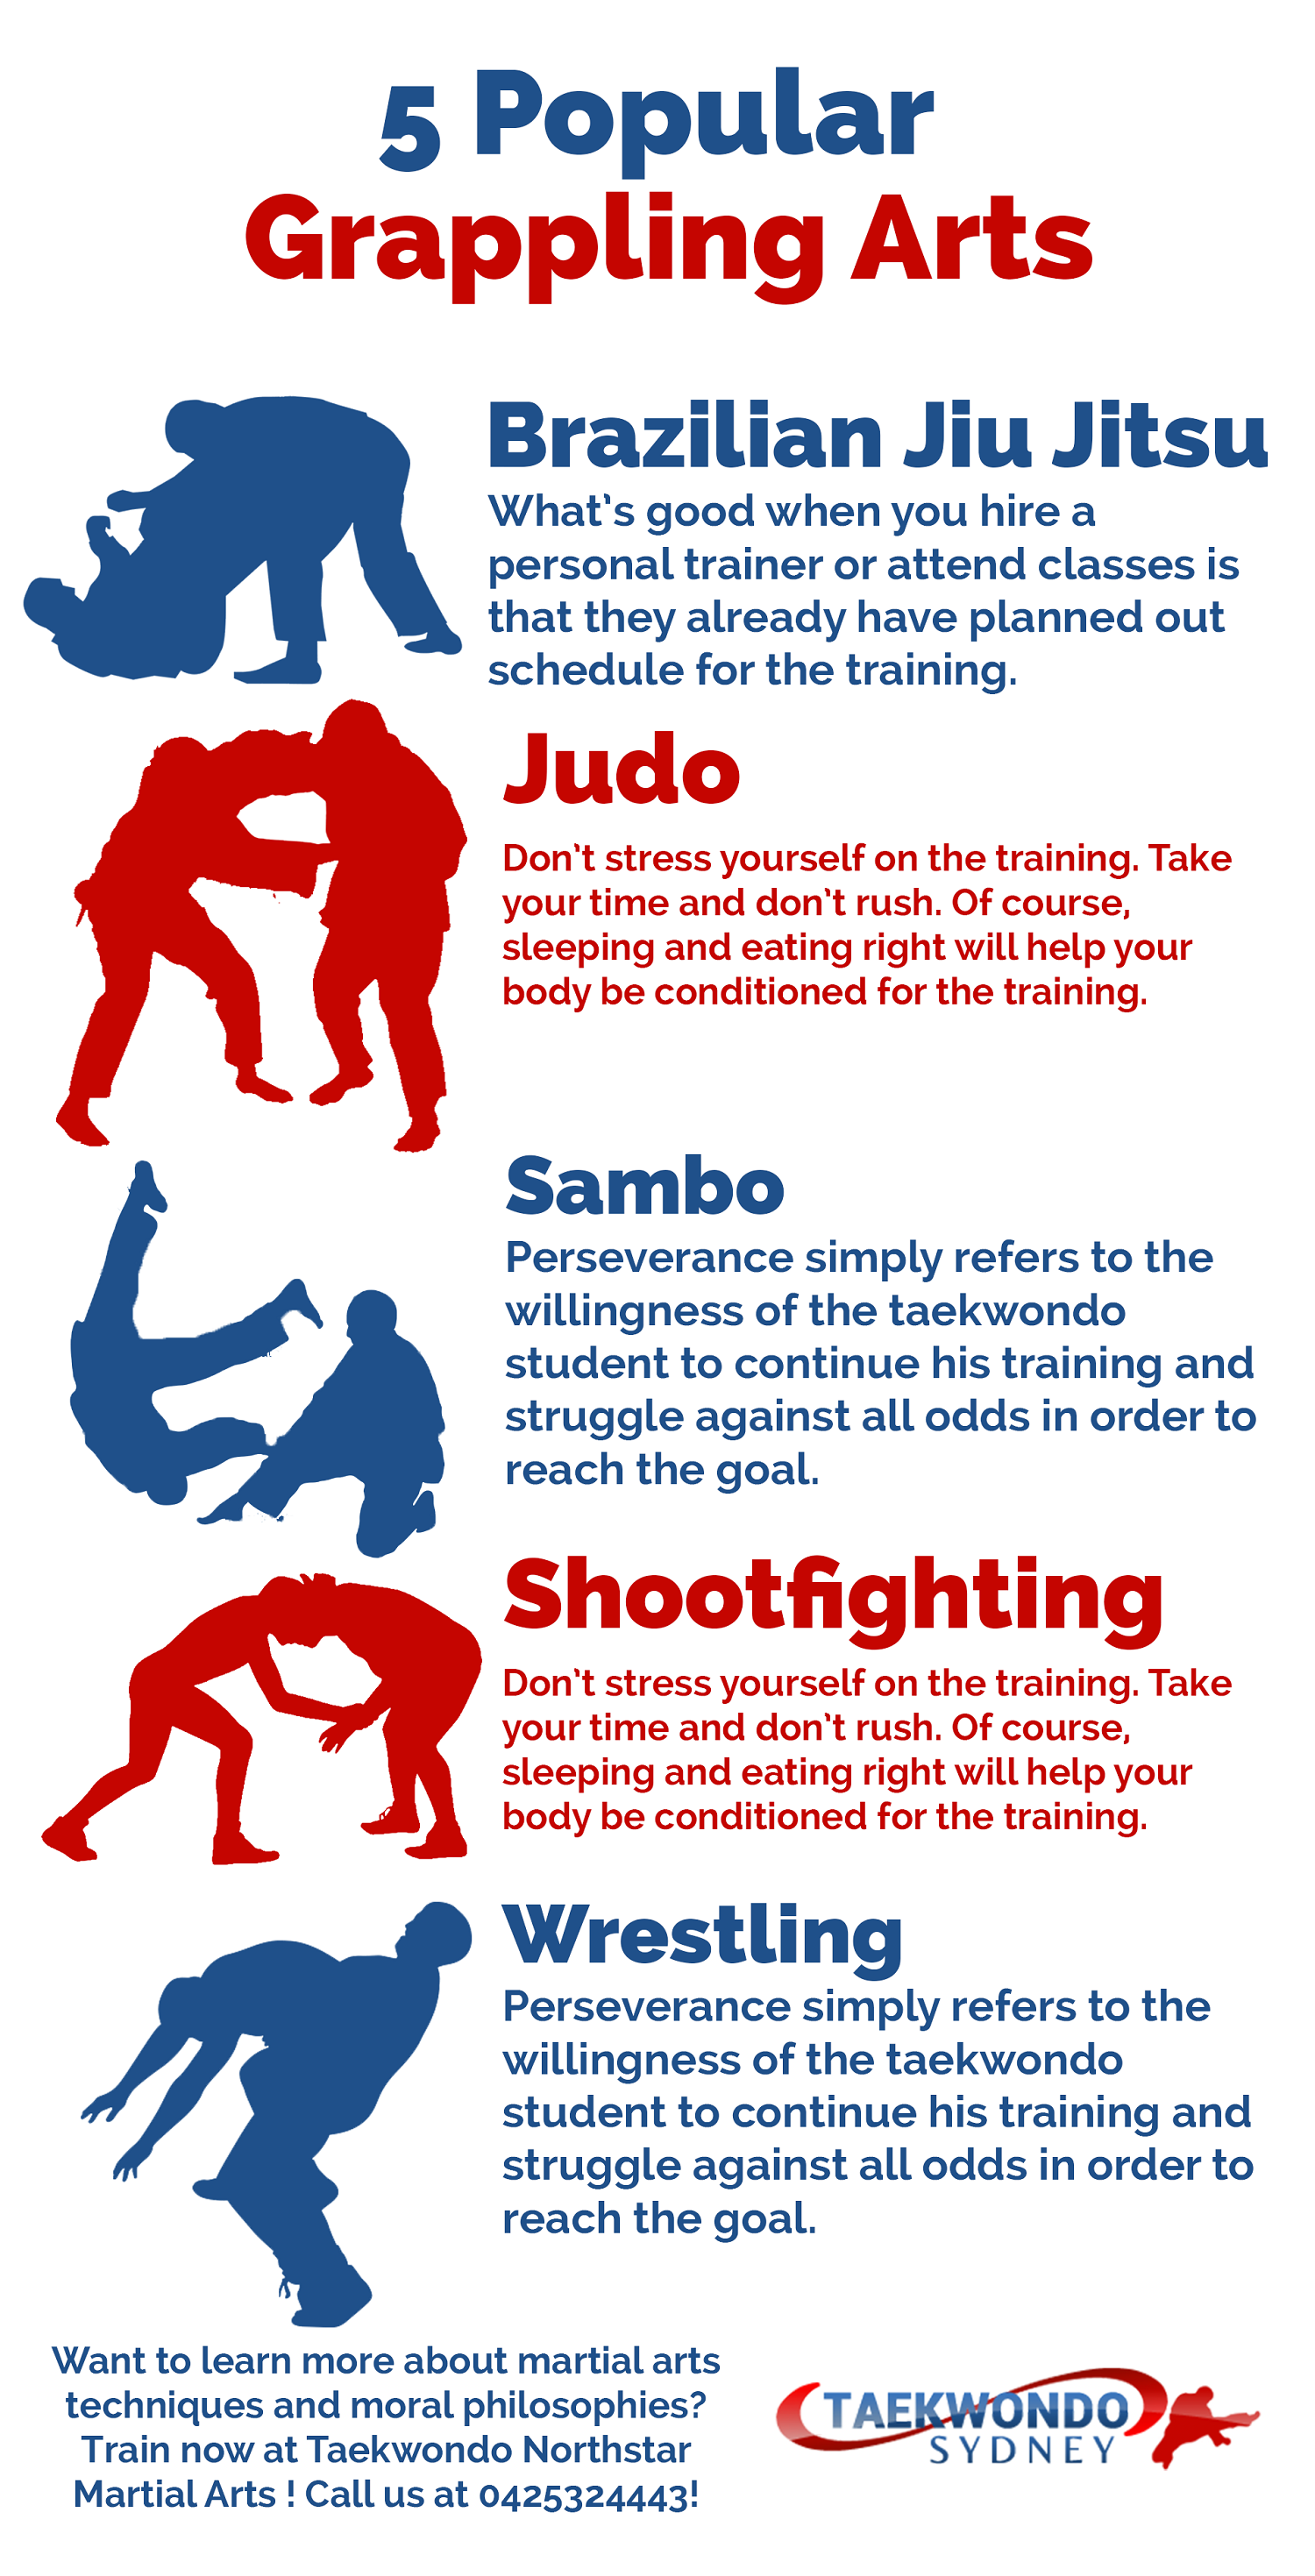 Grappling is a general term that covers variety of techniques used